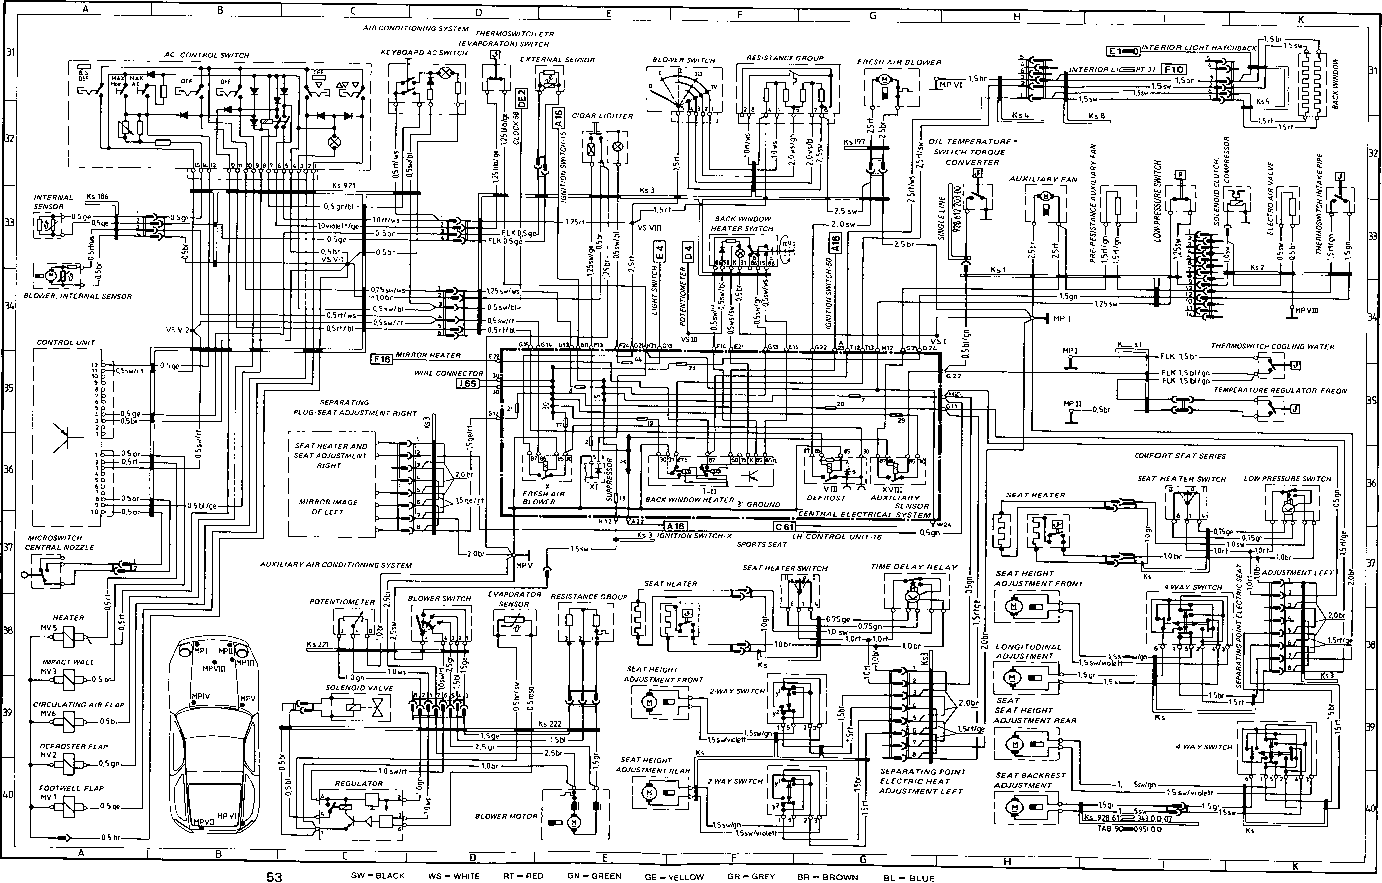 Wiring Diagrams For 1978 Mg Wire Data Schema Triumph Spitfire Diagram Porsche U2022 Free 1979 Midget